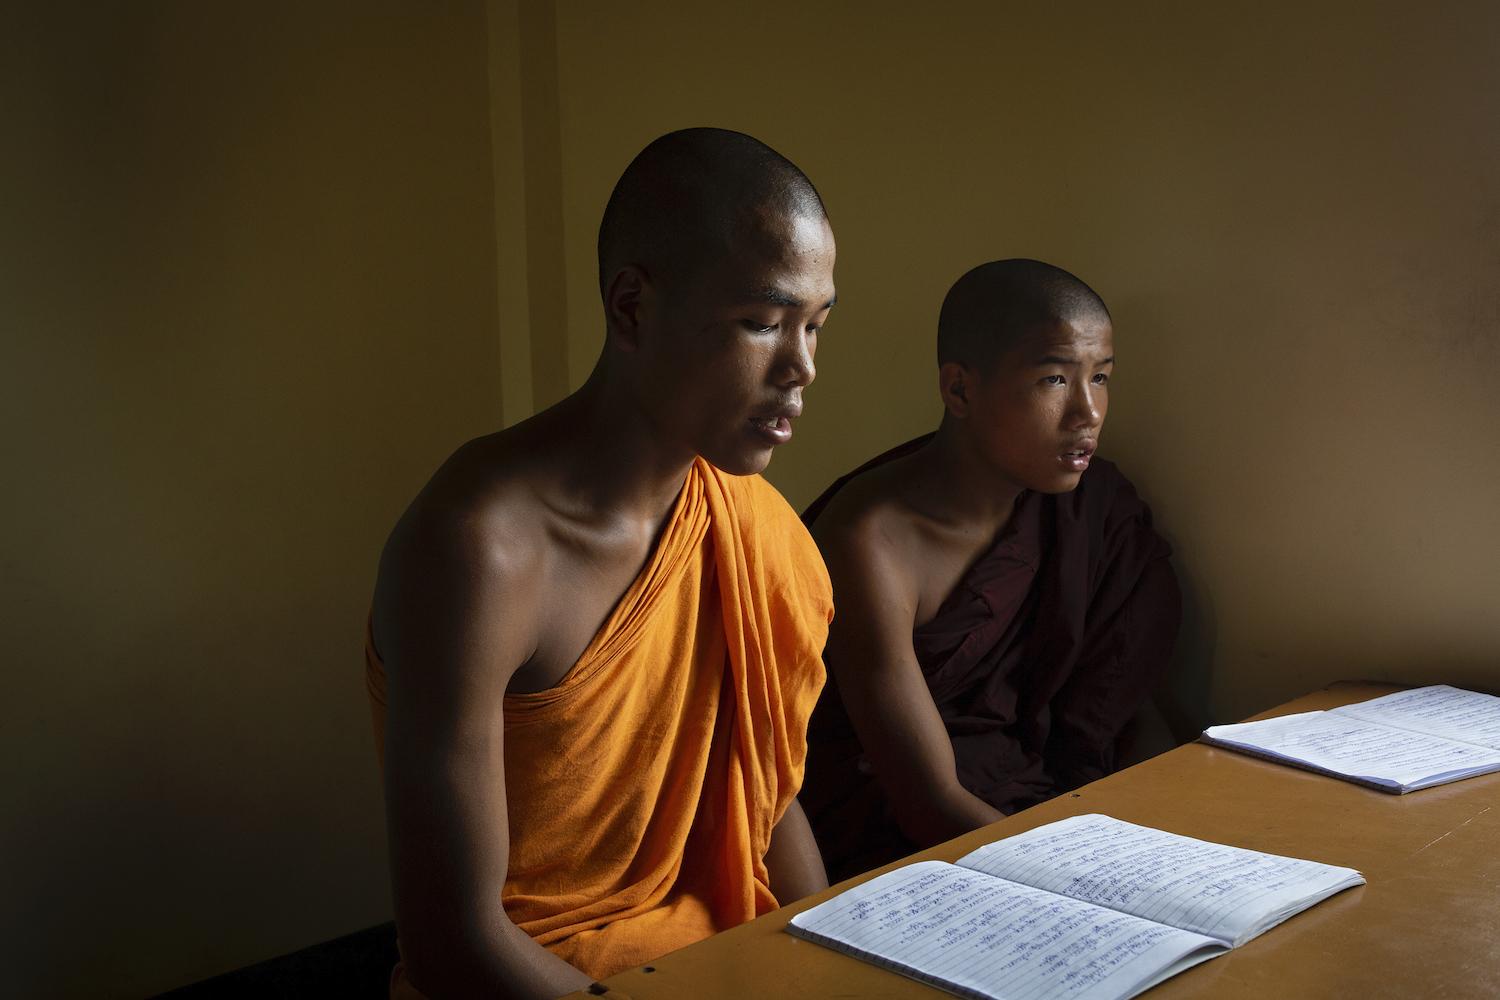 Novice monks attend an informal tuition class in Aung Myay Thar Yar monastery in Kyaukme Township, Shan State, on August 6. Like other monastic schools, Aung Myay Thar Yar has been unable to resume formal lessons because of COVID-19. (Hkun Lat   Frontier)